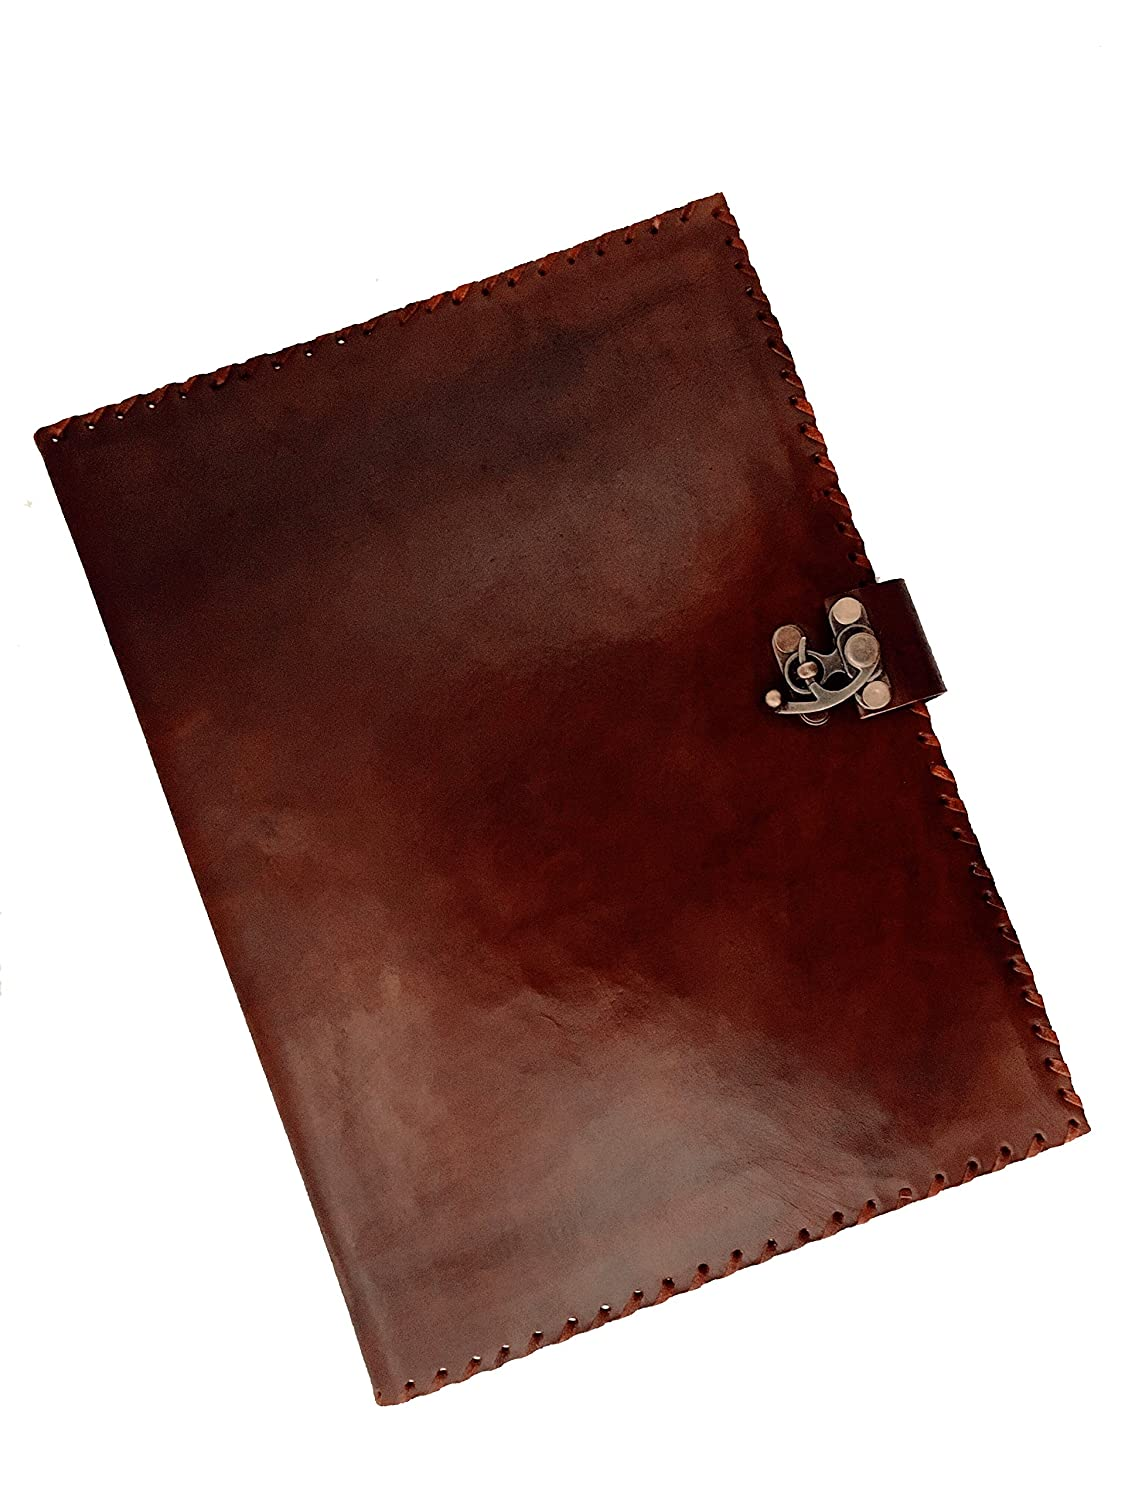 Amazon Com Handmade World Vintage Handmade Leather Portfolio